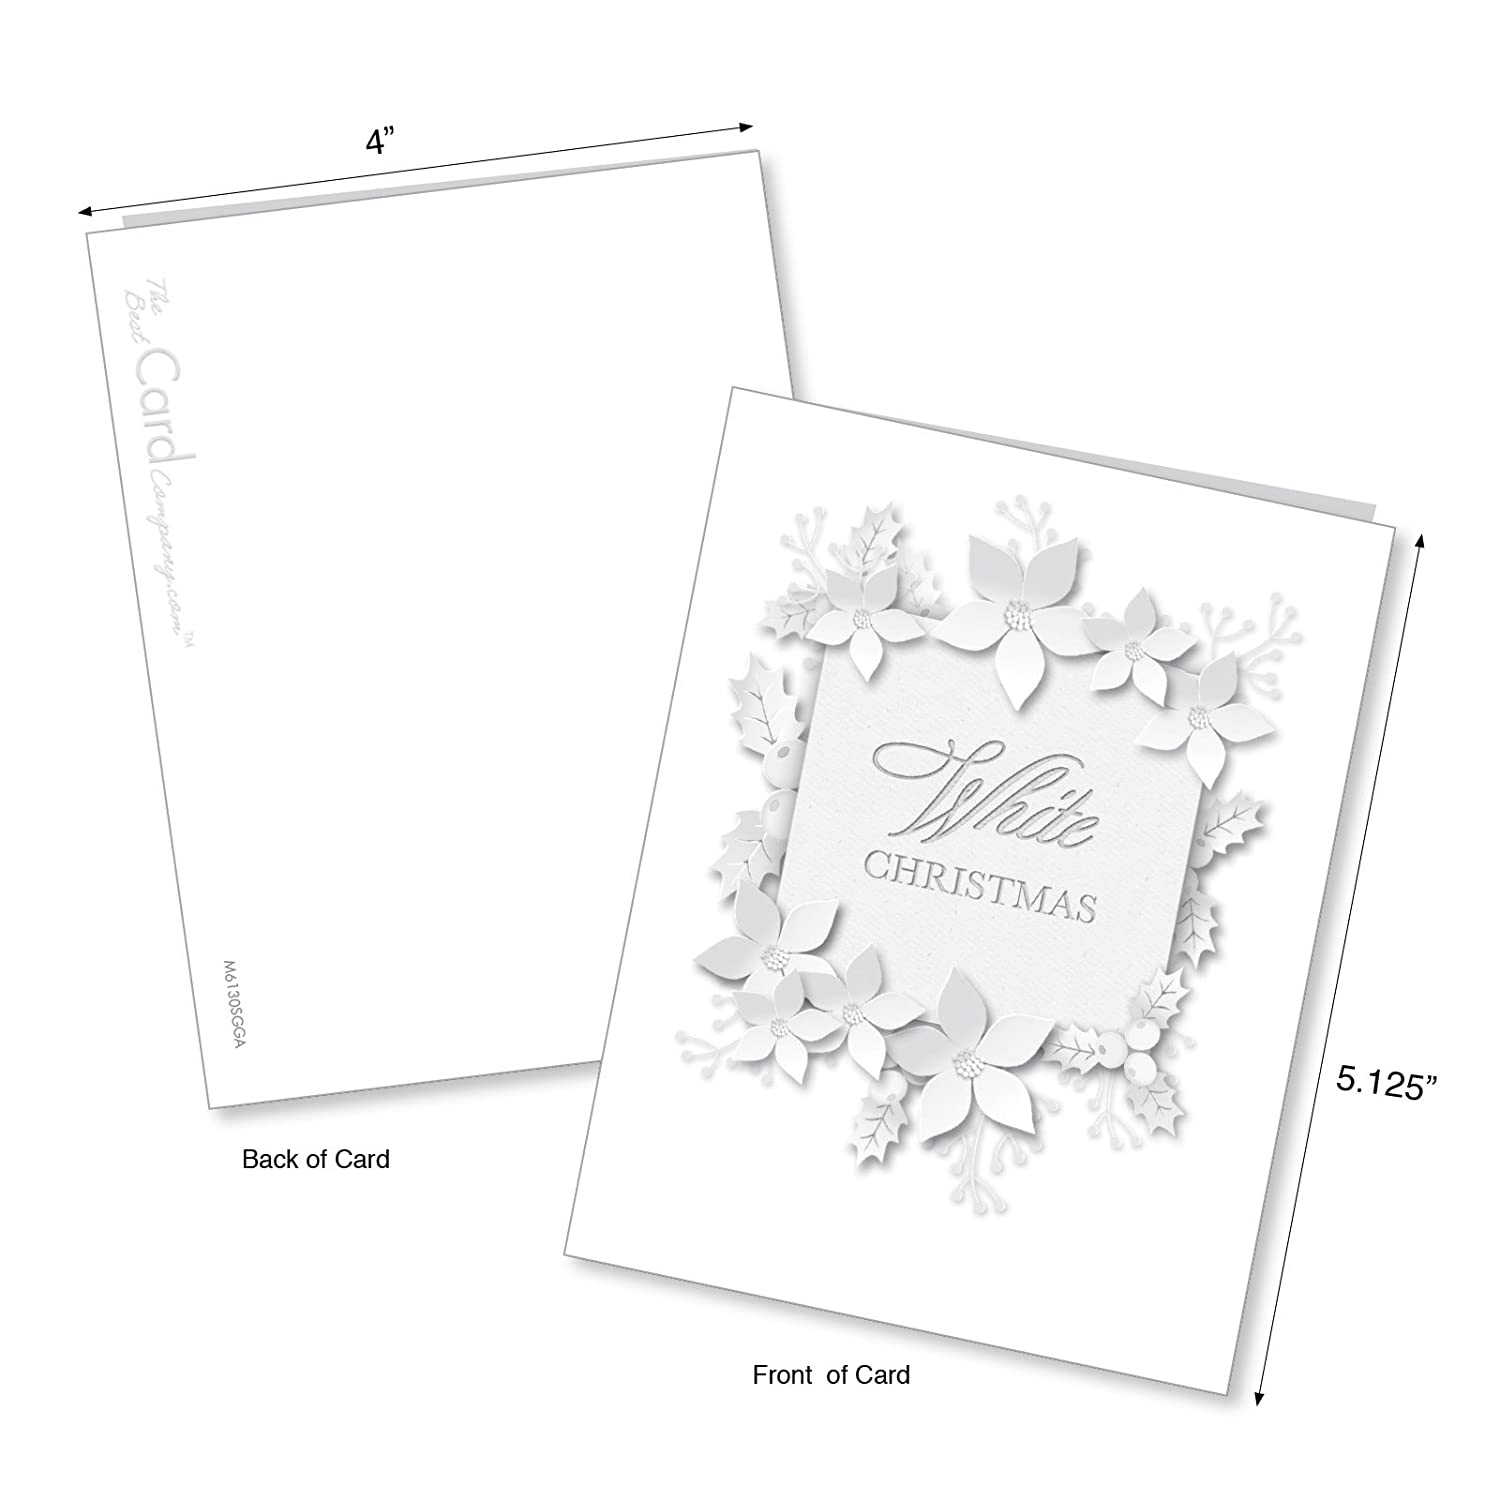 amazon am6130sgg b1x10 winter white assorted seasons Lime Green amazon am6130sgg b1x10 winter white assorted seasons greetings note cards featuring the white christmas everyone always asks for with envelopes